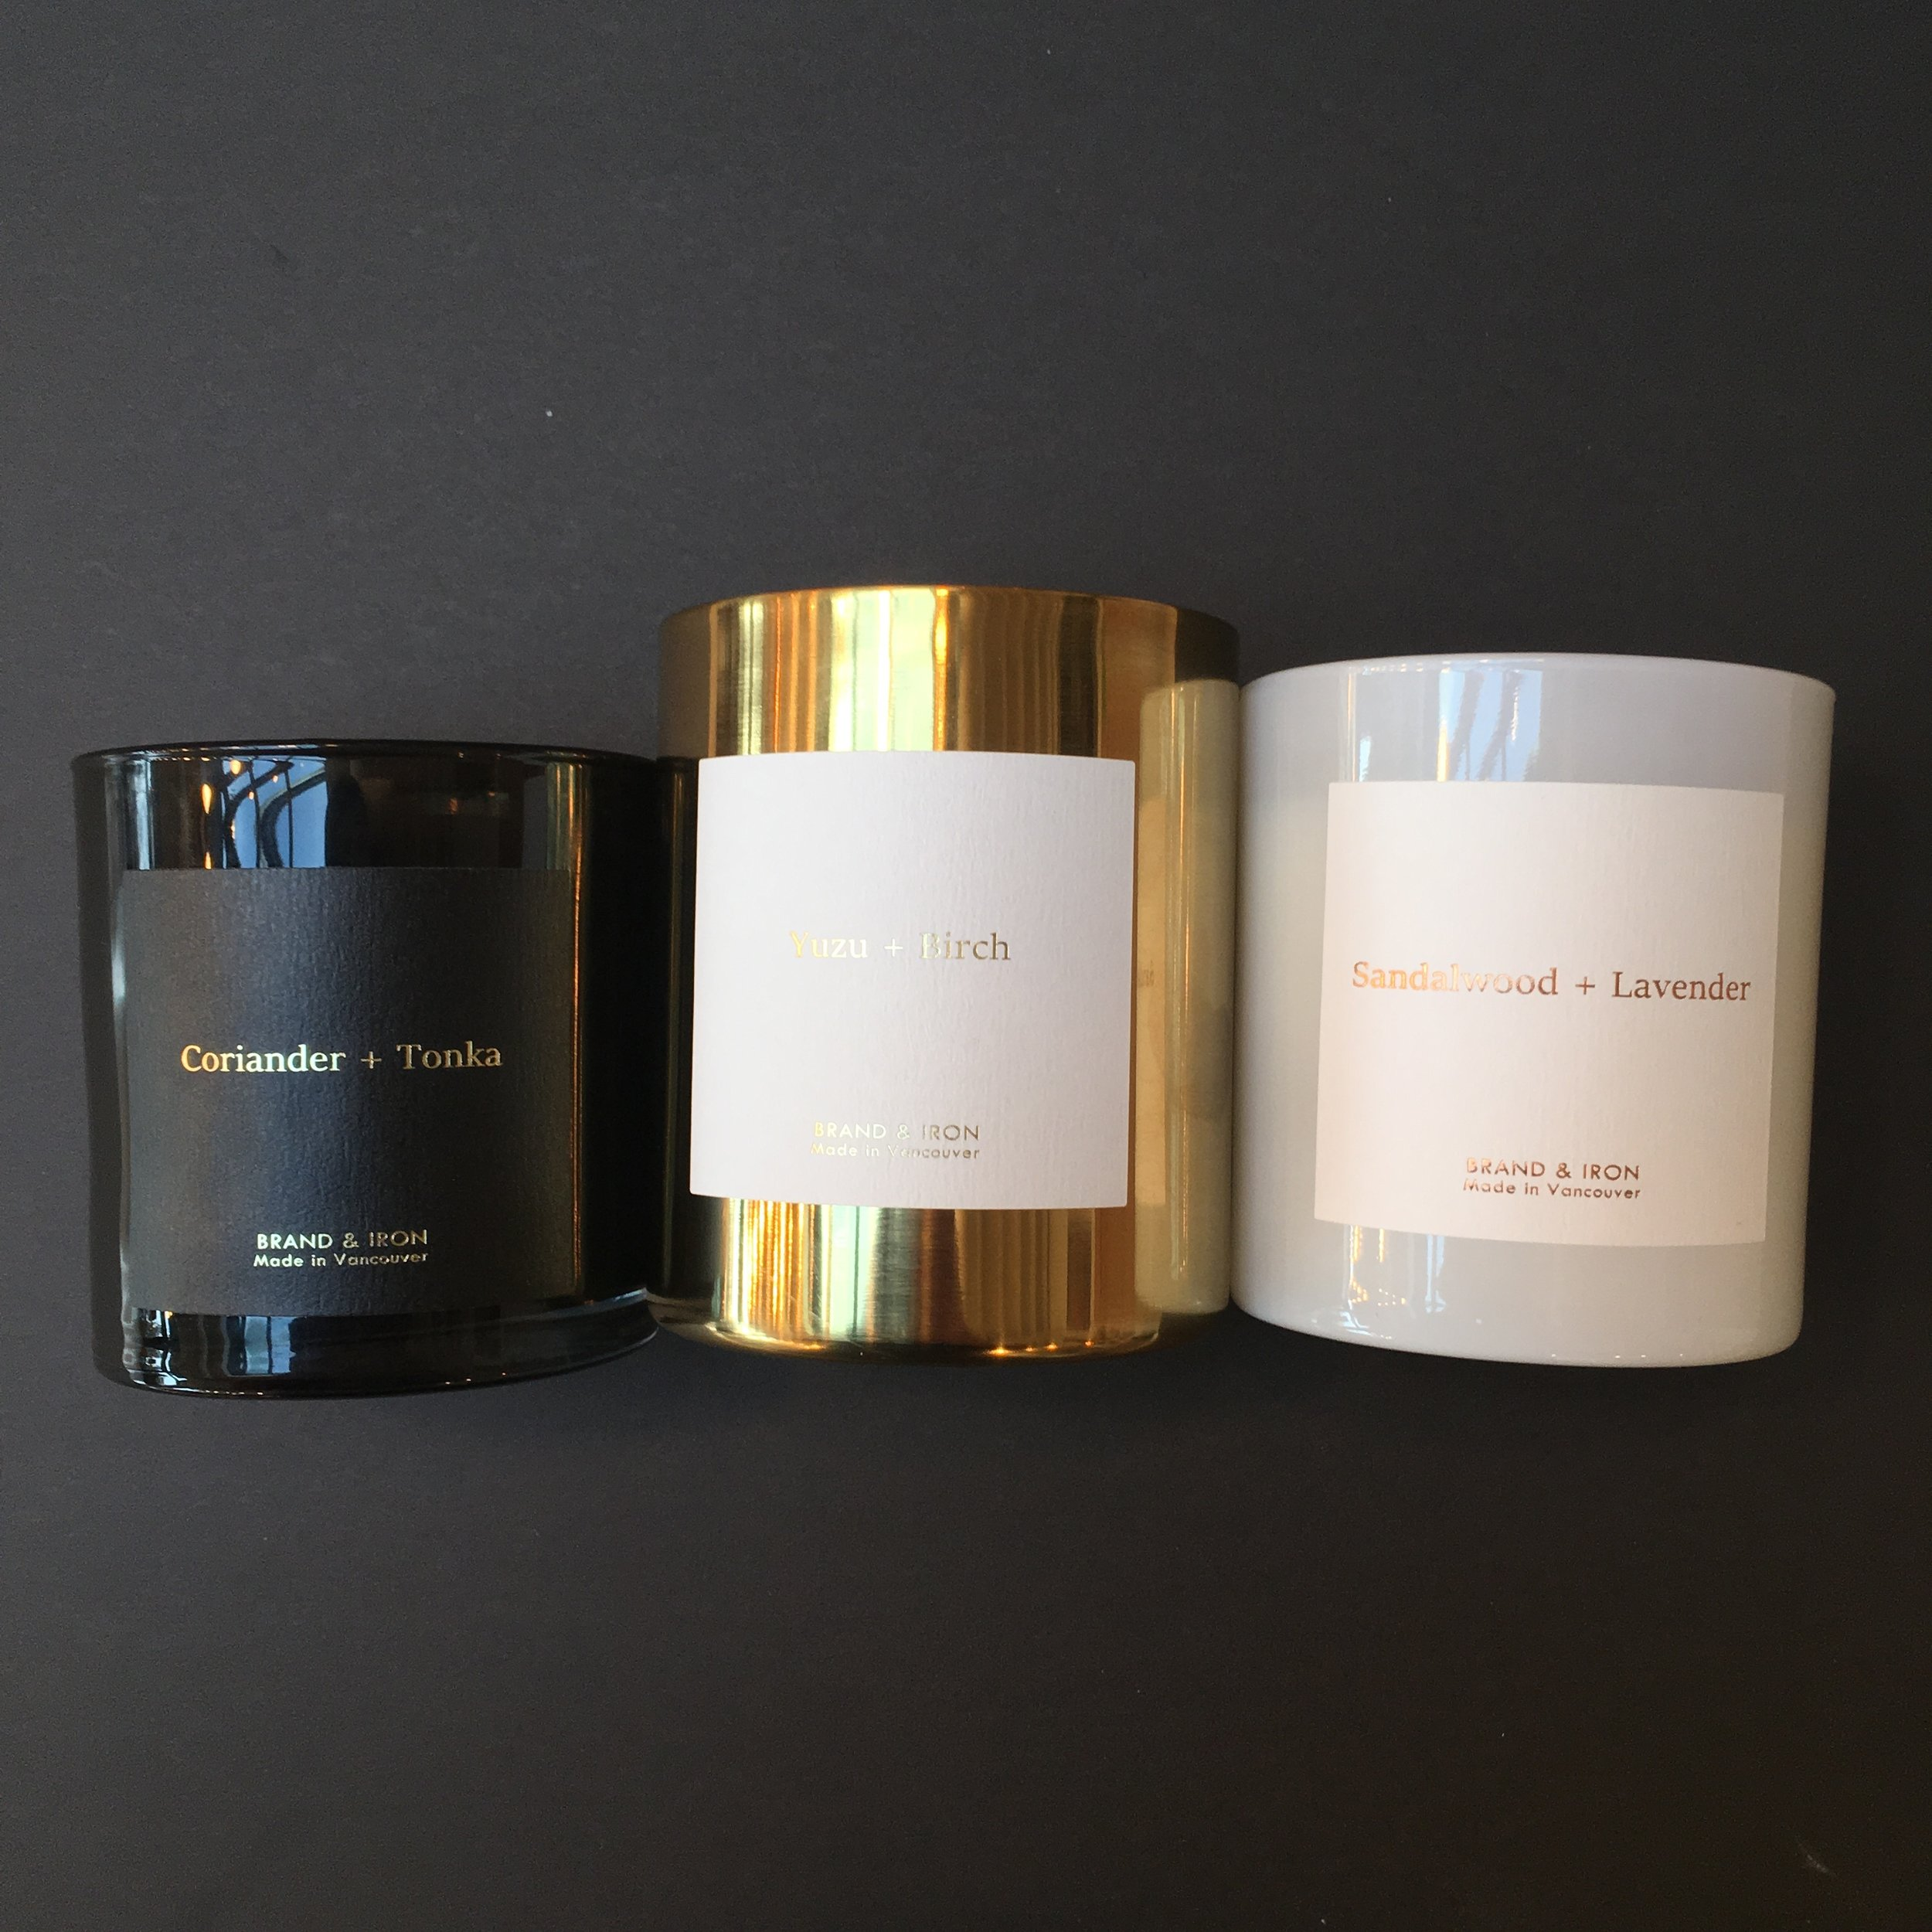 Brand & Iron candles have been gracing our shelves for a while but we just got a sweet new re-stock of their incredible candles.  Check out the ultra special edition Yuzu + Birch candle featuring a stunning and reusable brass vessel.